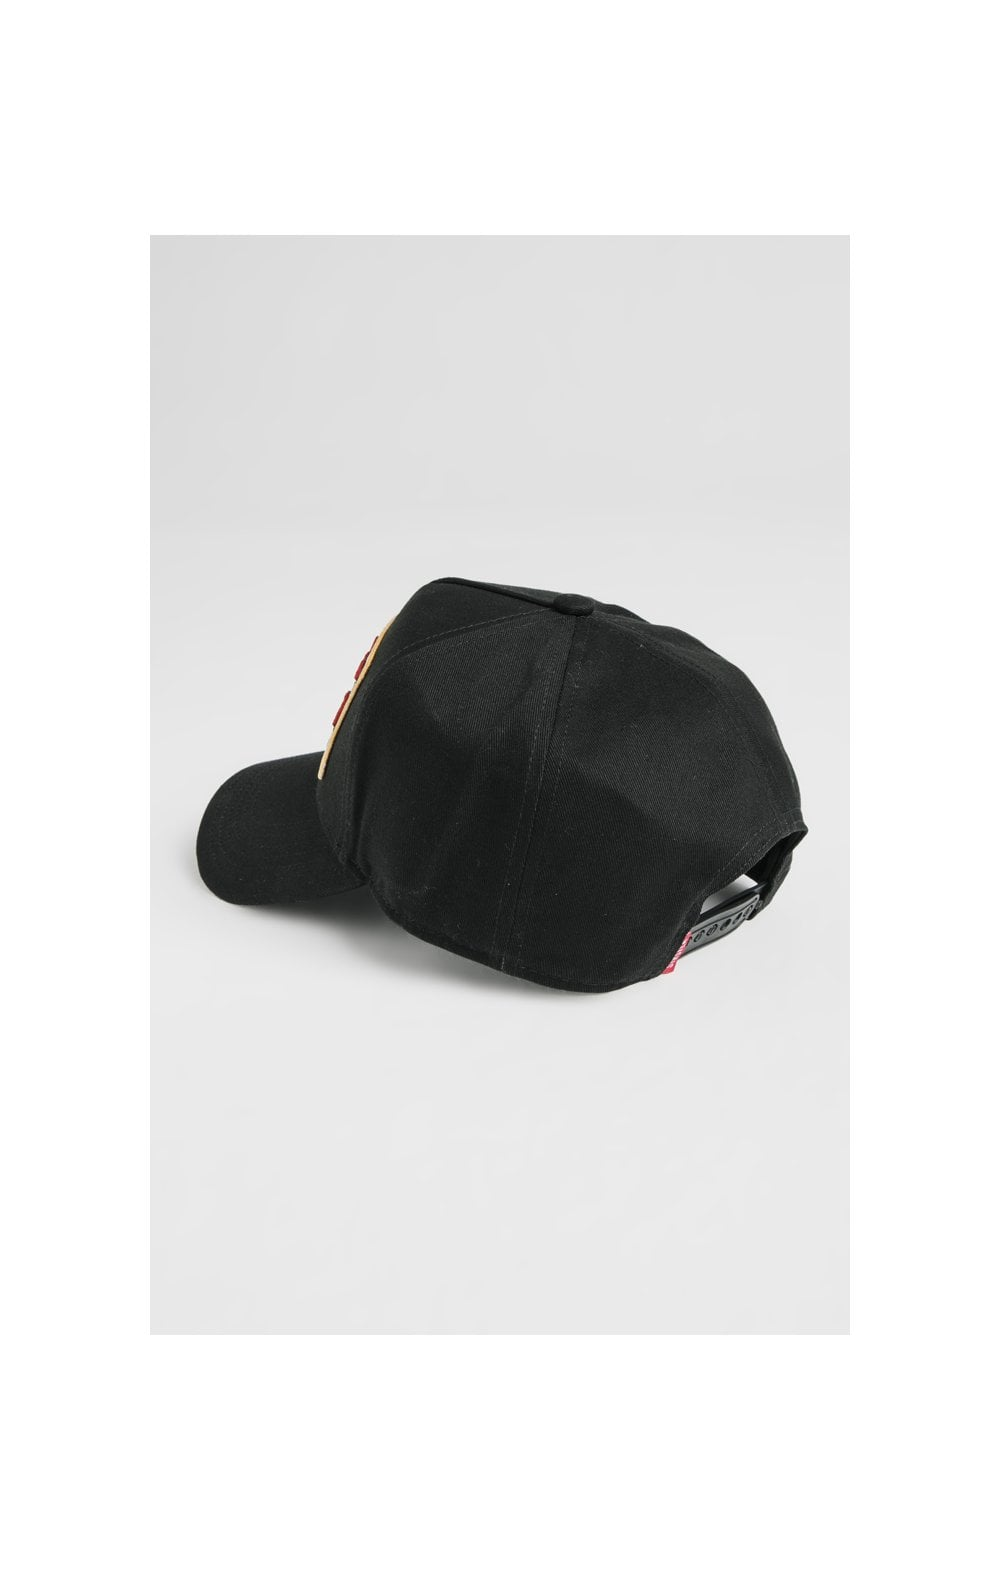 Load image into Gallery viewer, SikSilk Patch Full Trucker - Black (2)